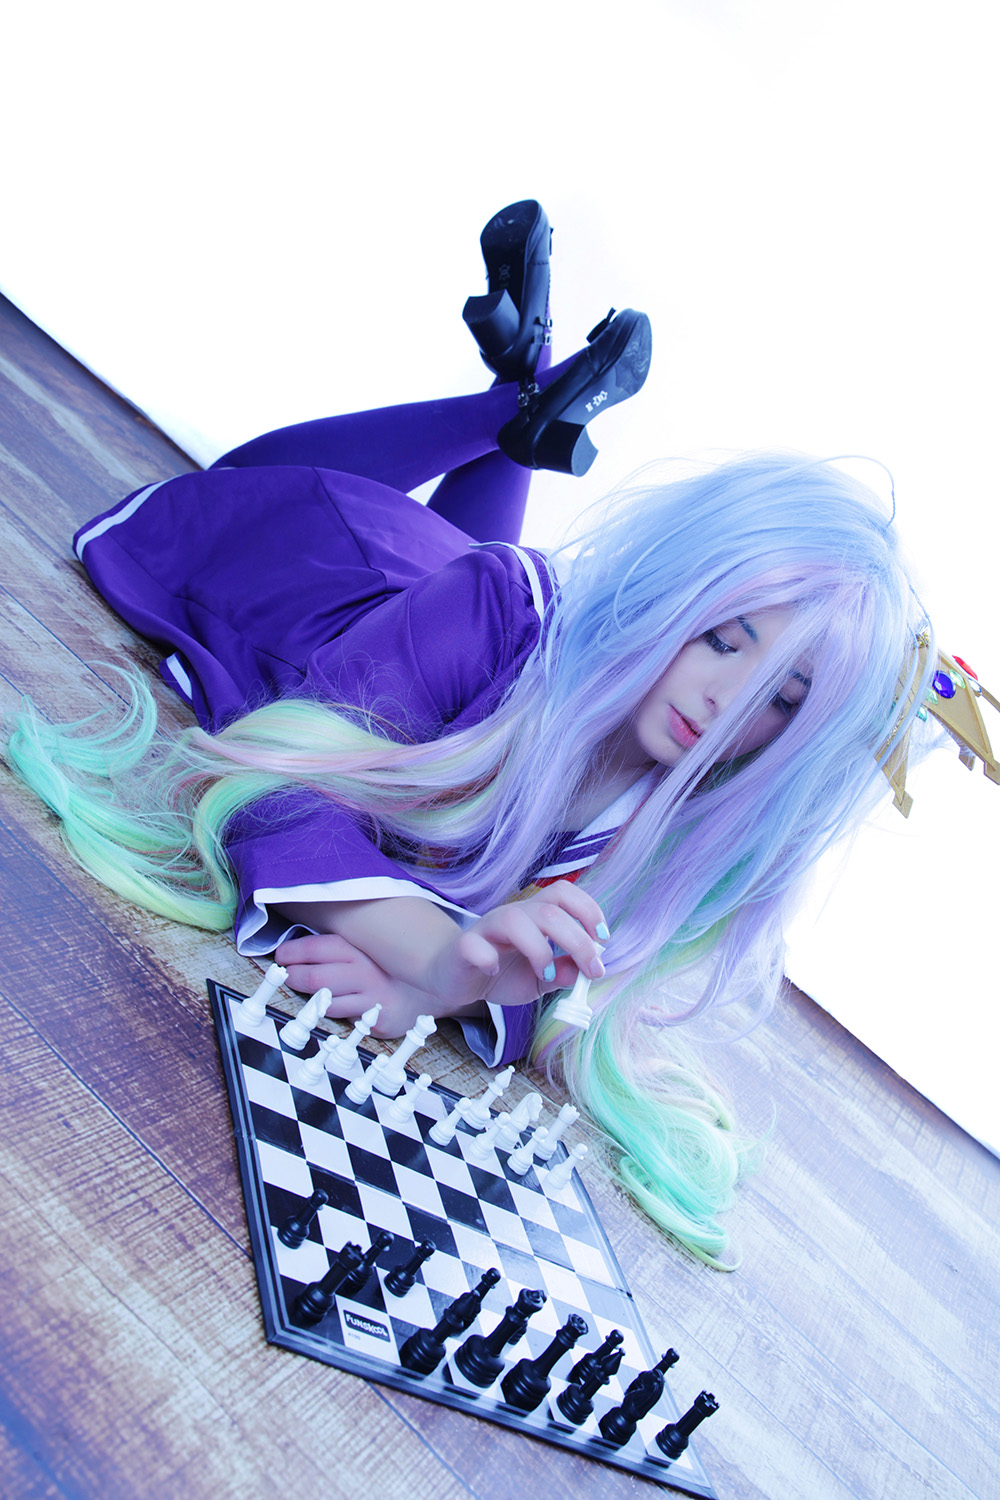 BlackorchidphotoCosplay3.jpg